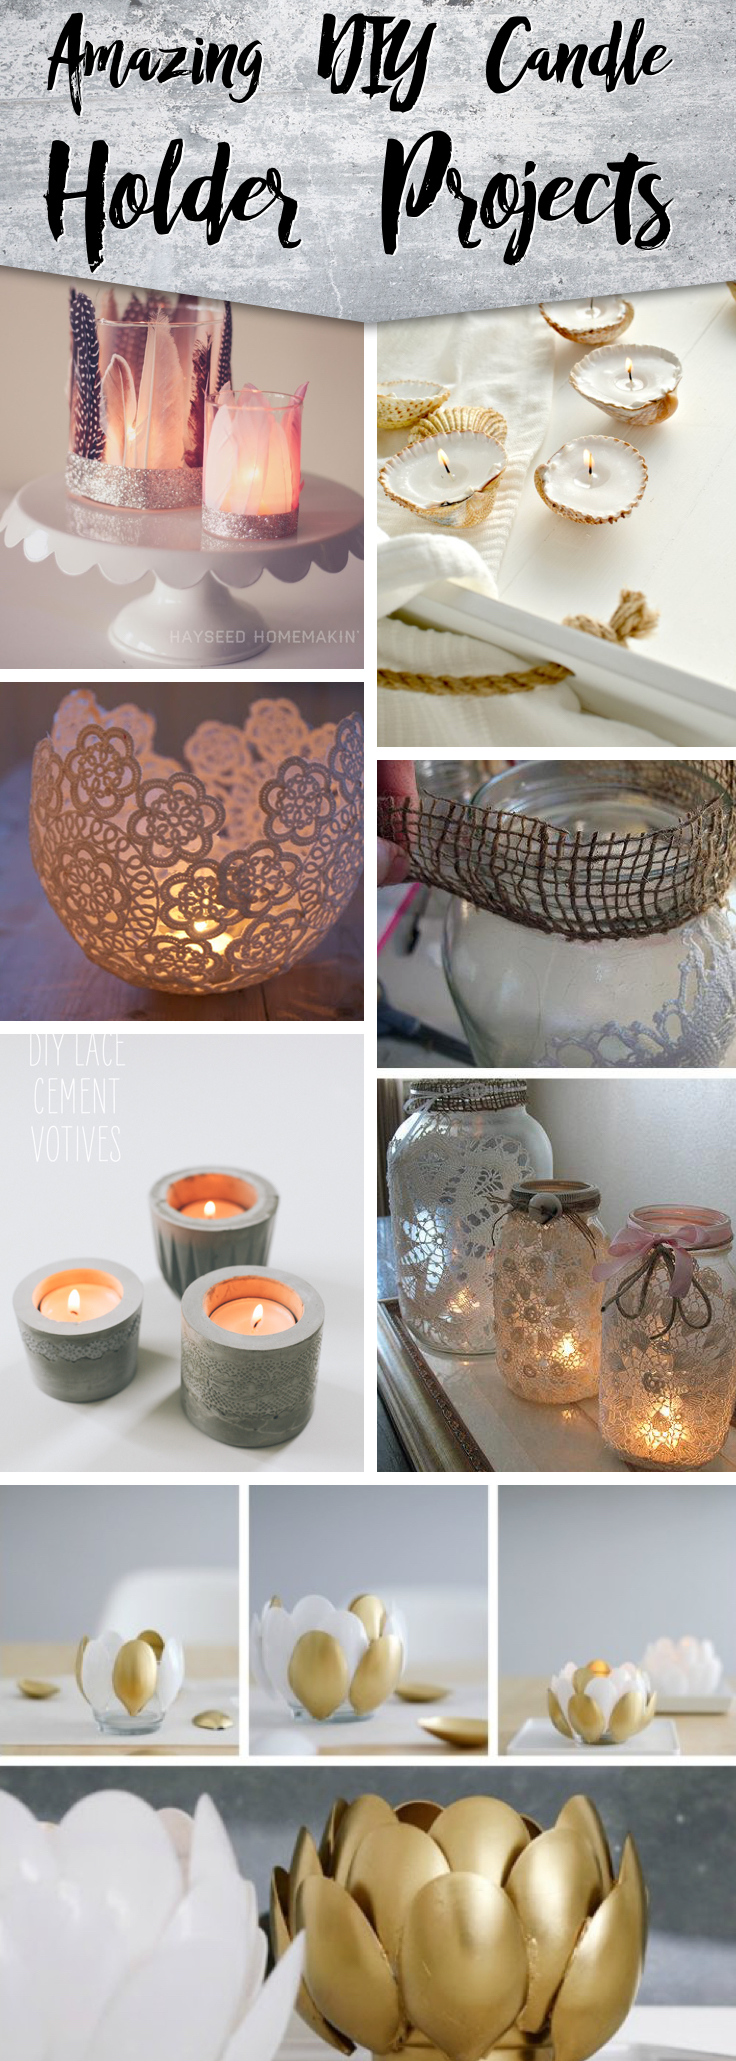 25 Amazing Diy Candle Holder Projects For Your Home Cute Diy Projects